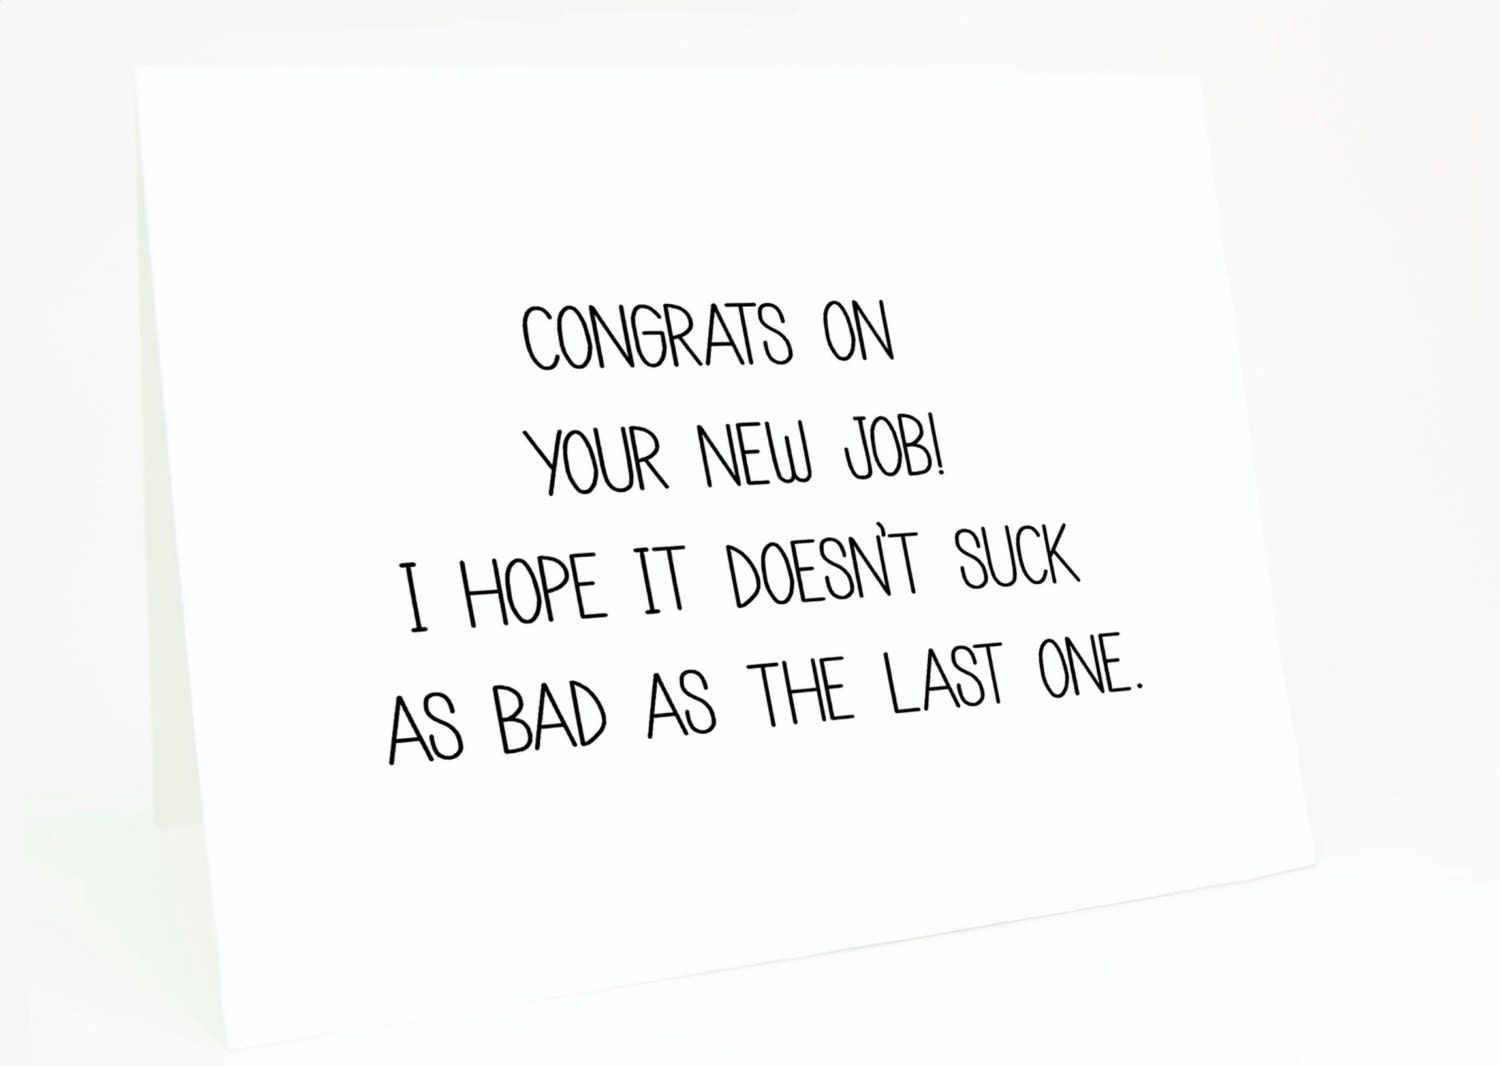 Congrats On Your New Job Quotes: 30+ Excellent Good Luck Quotes